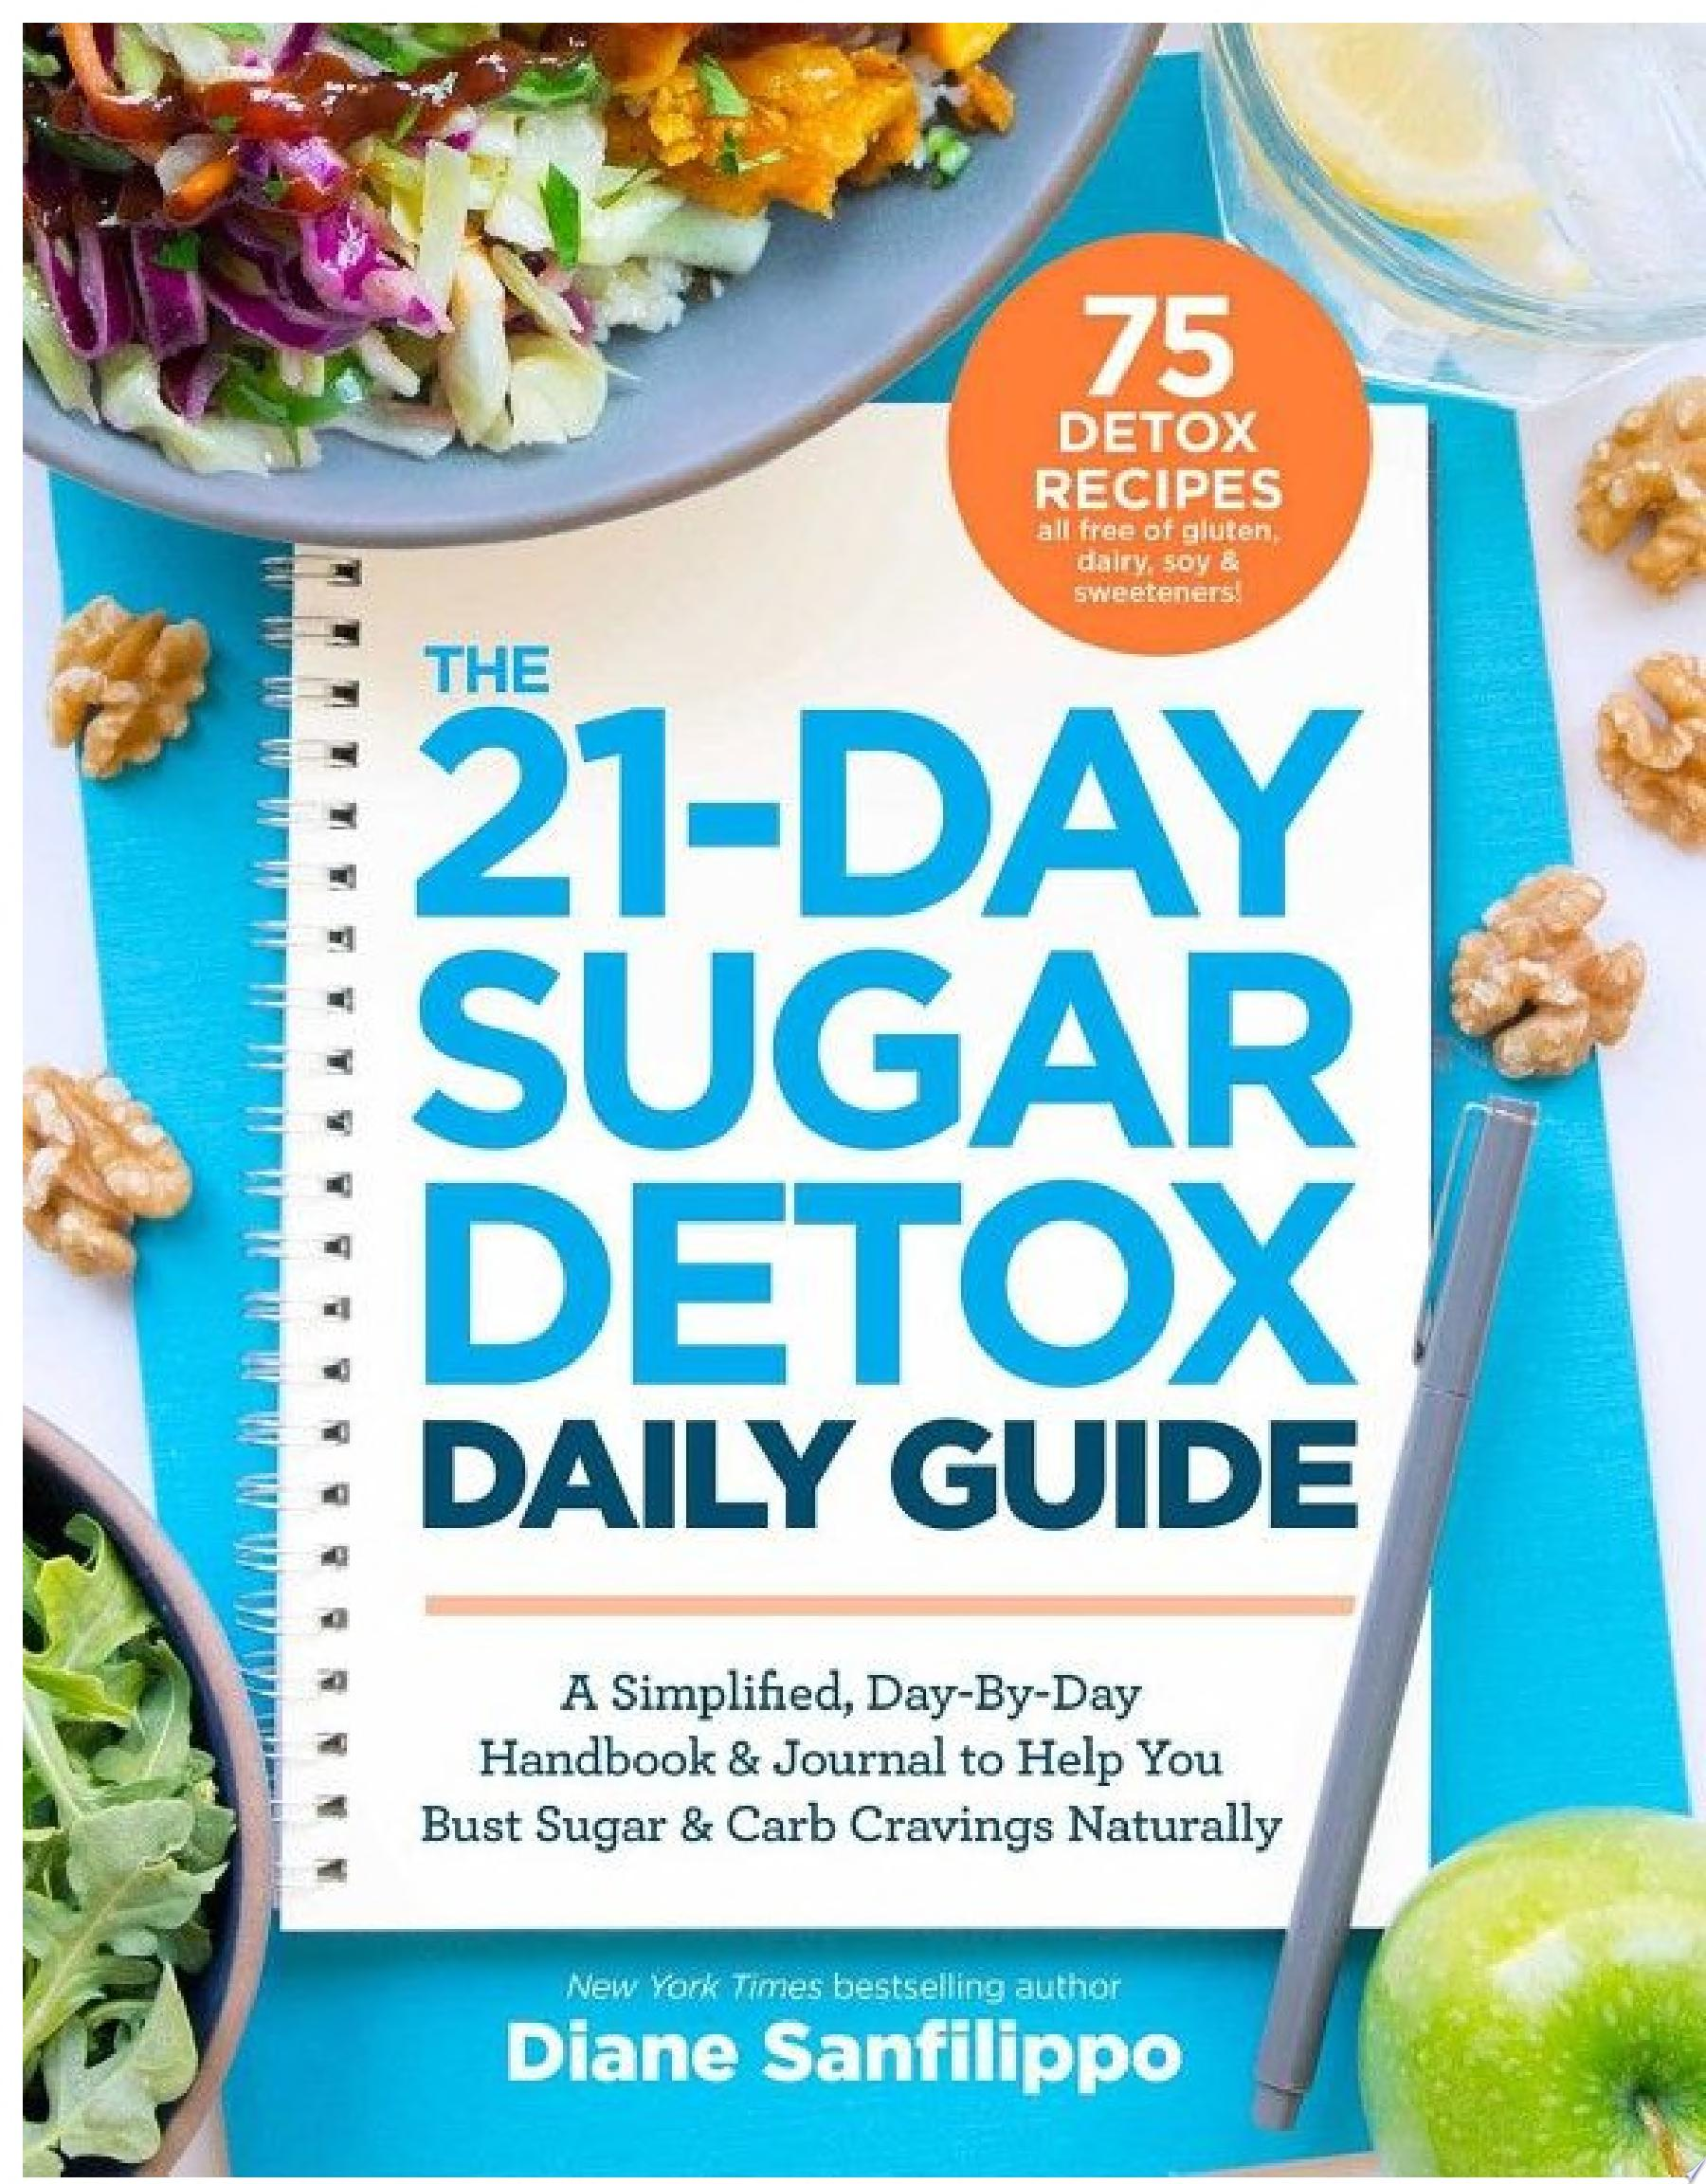 The 21 Day Sugar Detox Daily Guide